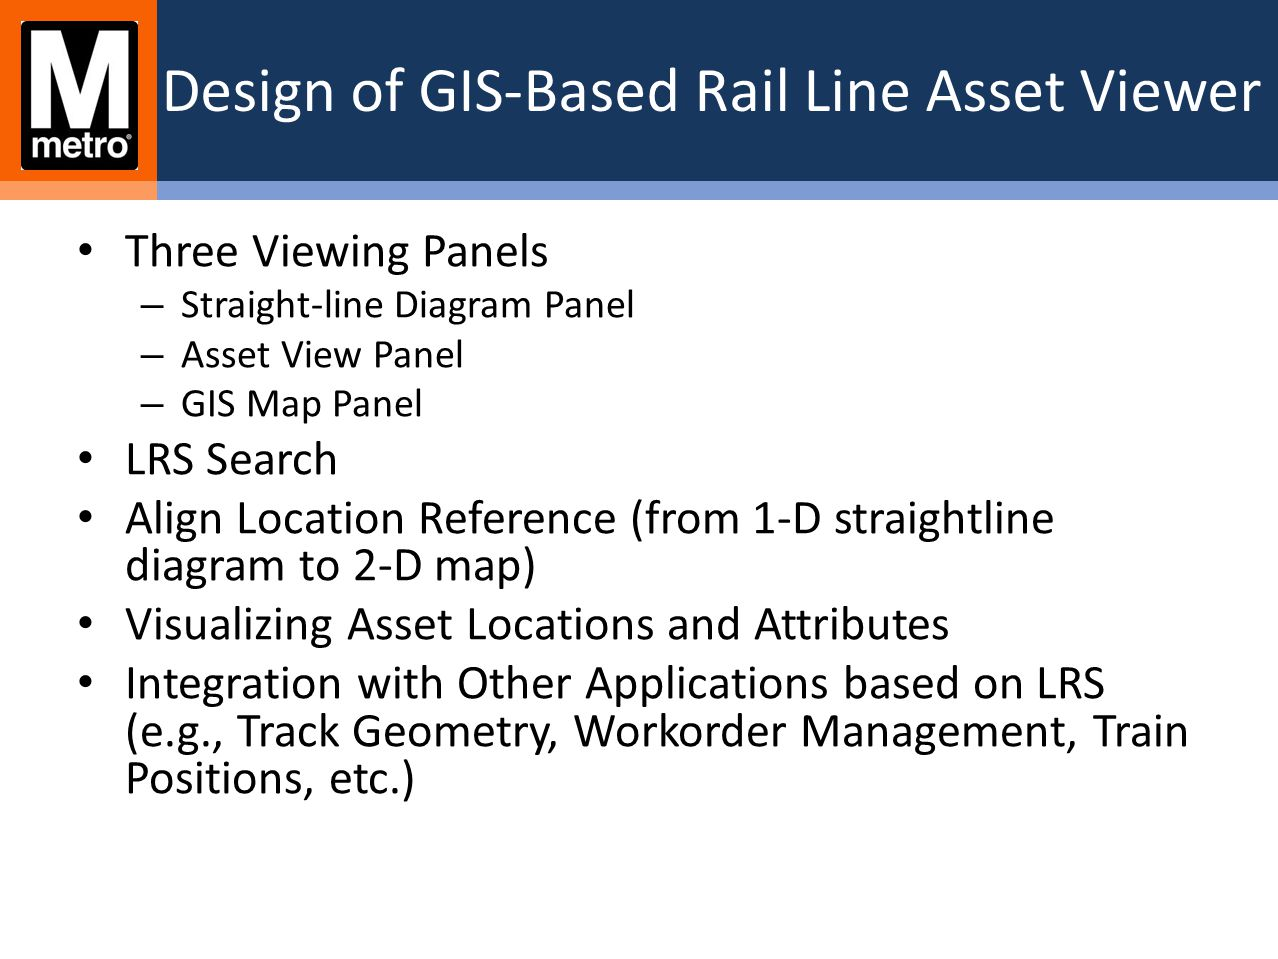 Design of GIS-Based Rail Line Asset Viewer